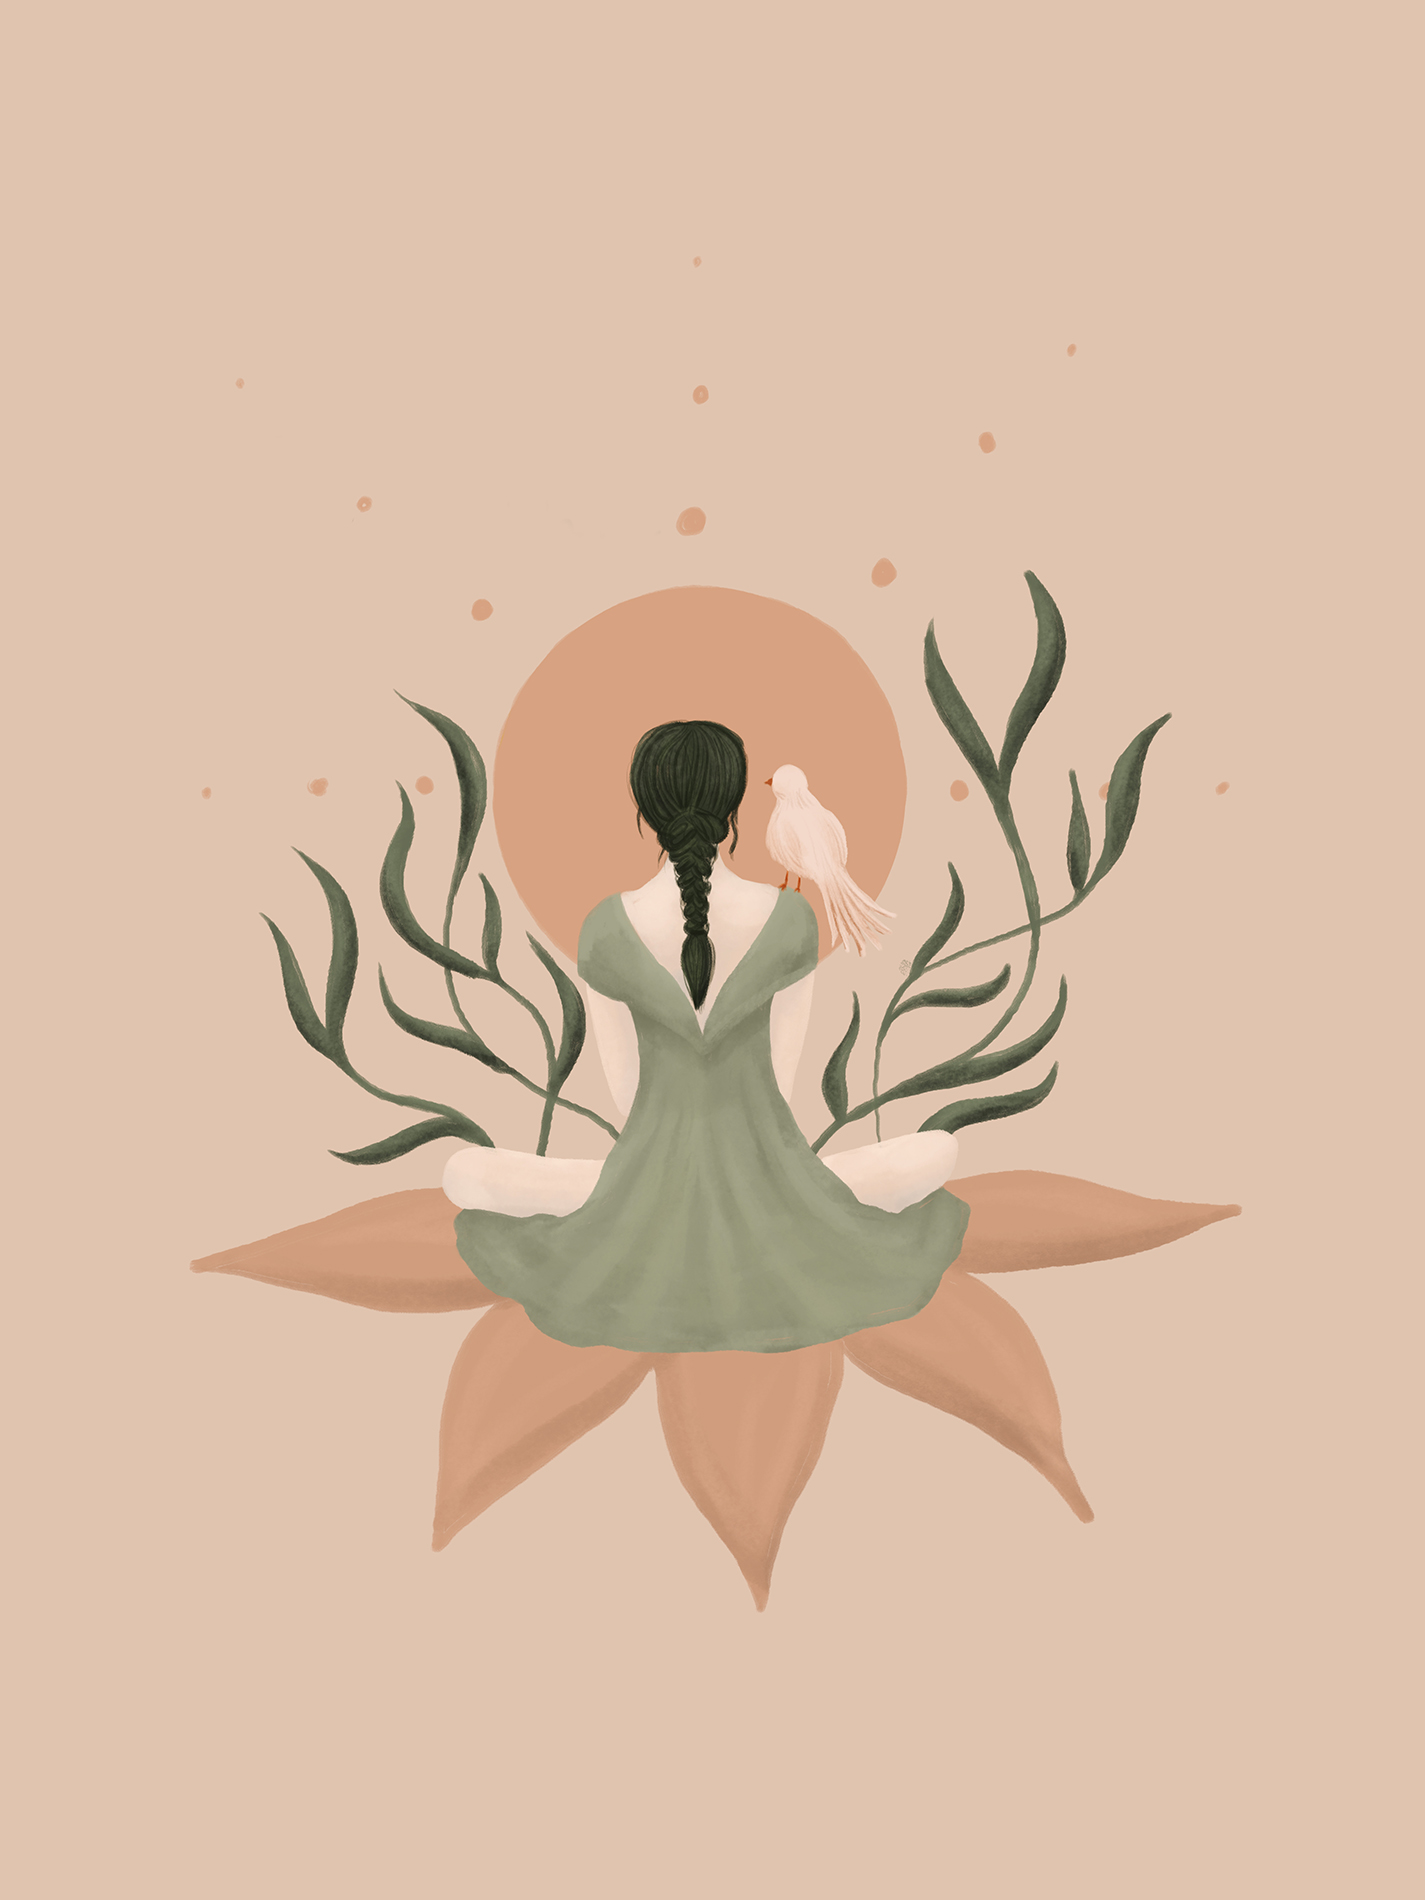 Peaceful illustration of a woman with a bird on her shoulder meditating